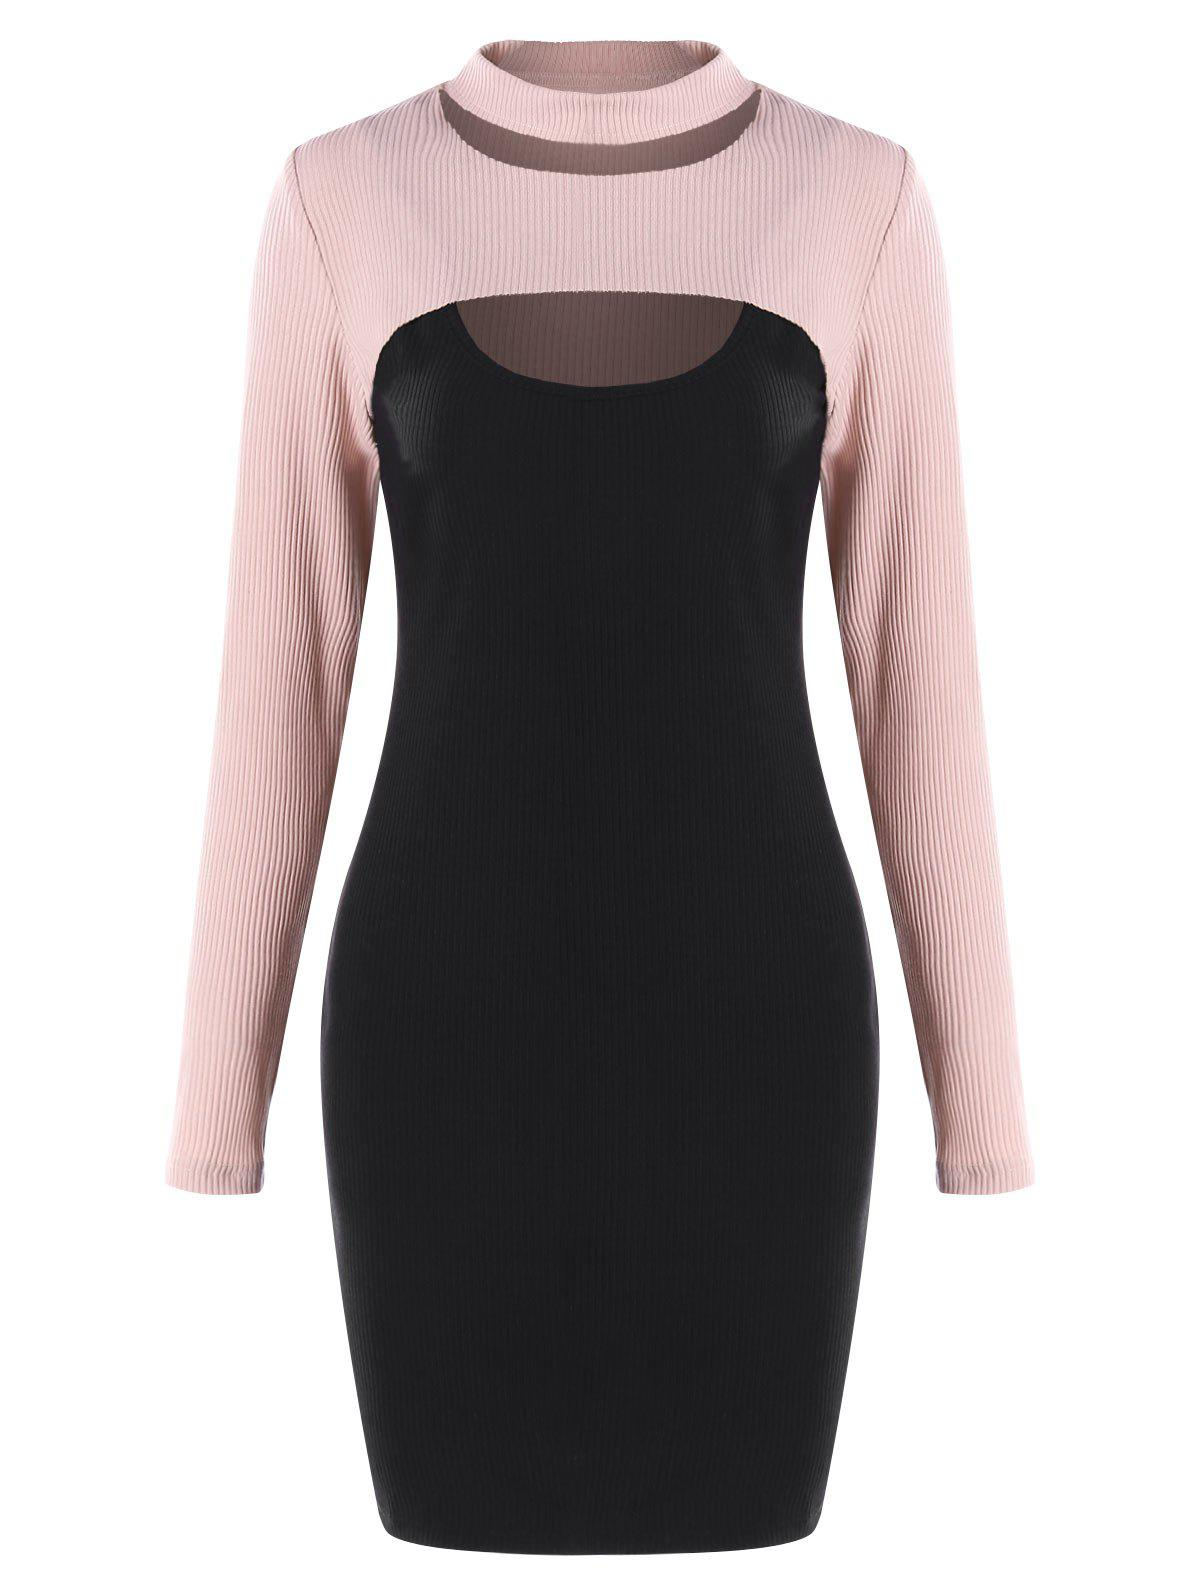 Cheap Cut Out Knit Top and Bodycon Dress